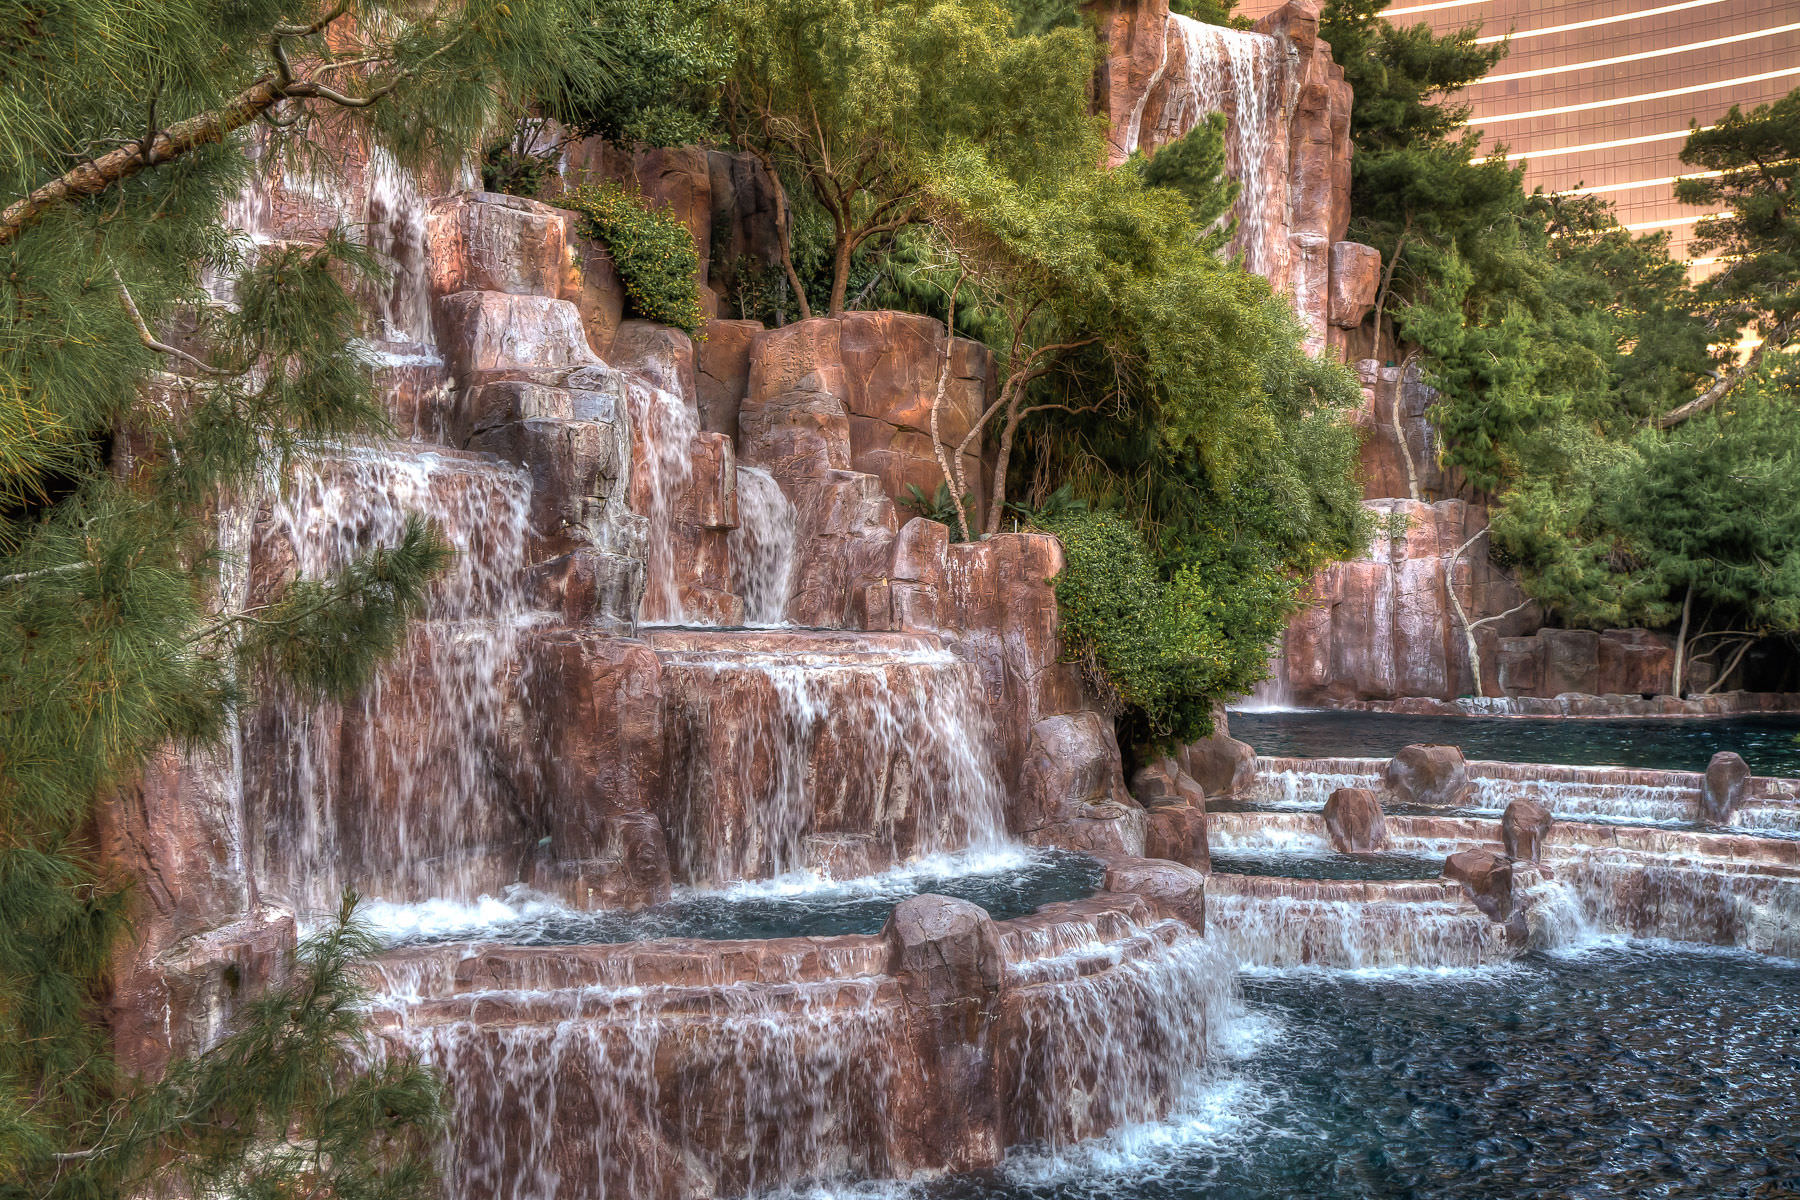 The waterfalls outside of the Wynn Las Vegas Hotel & Casino.